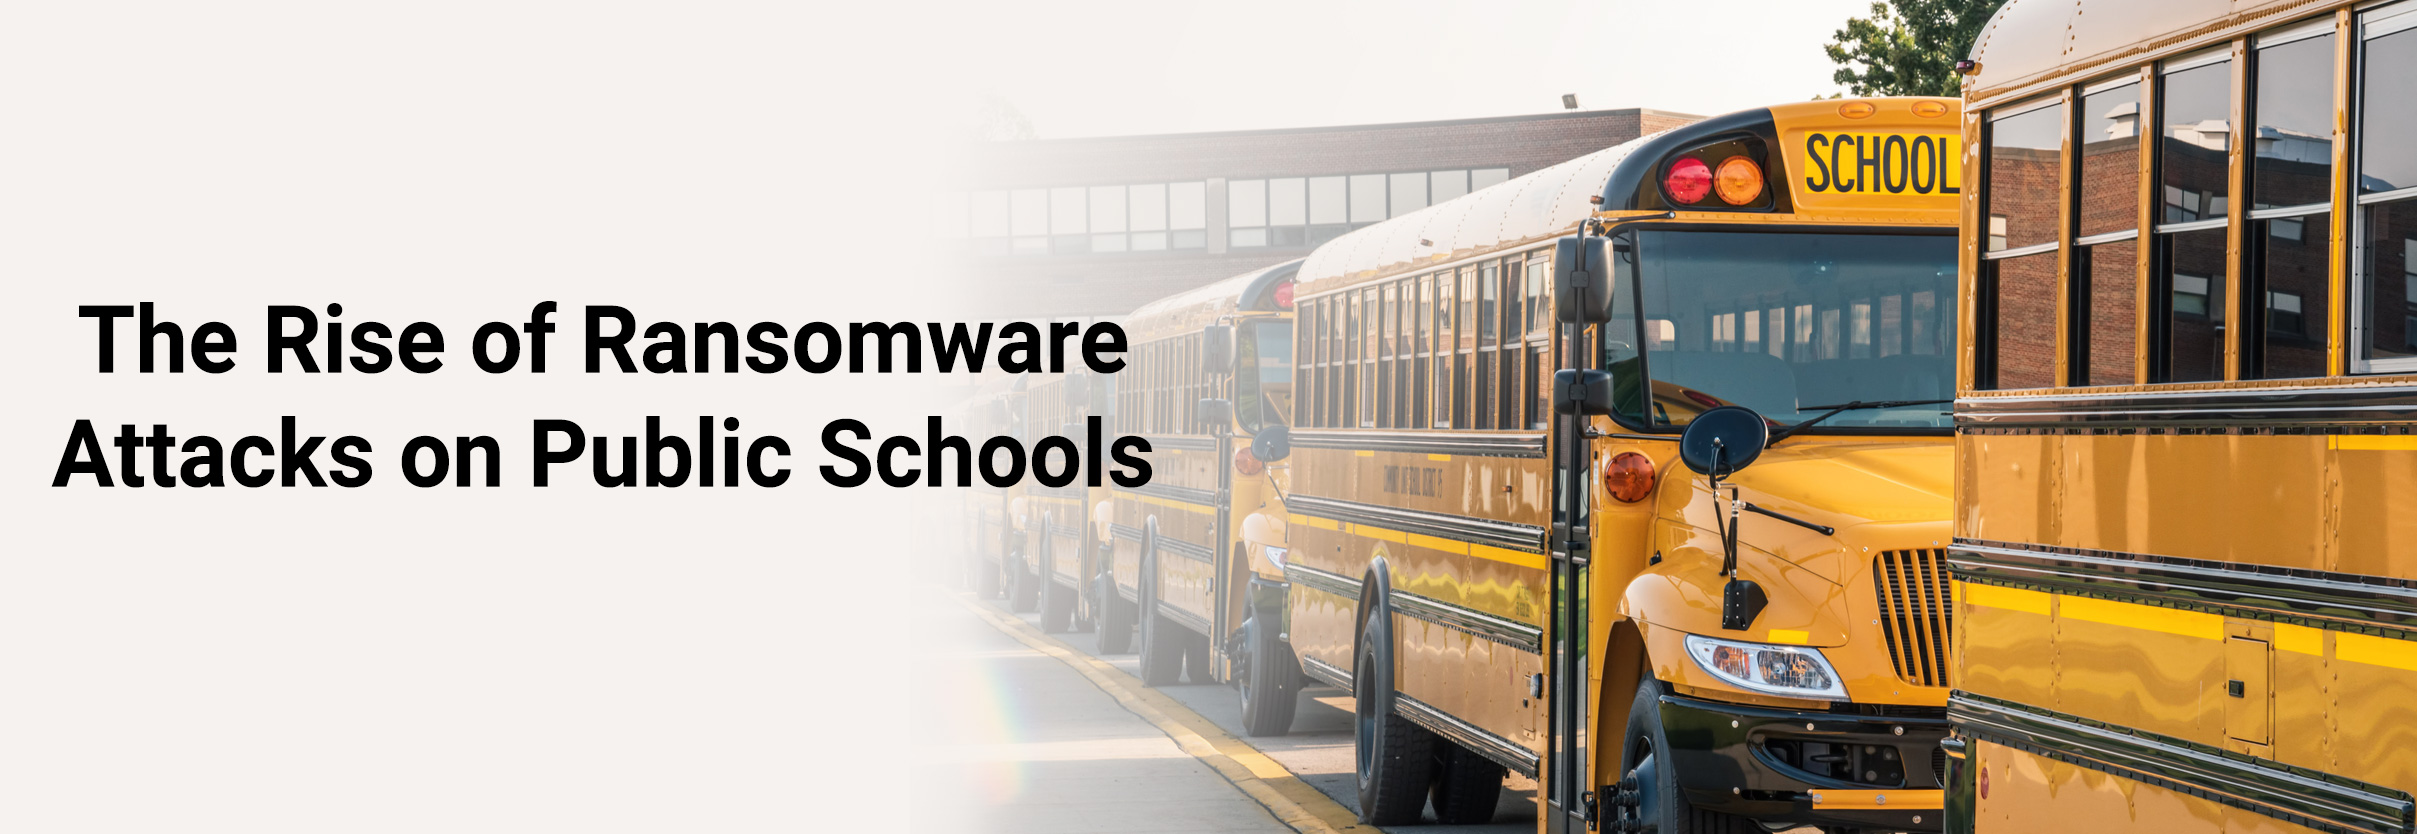 The Rise of Ransomware Attacks on Public Schools